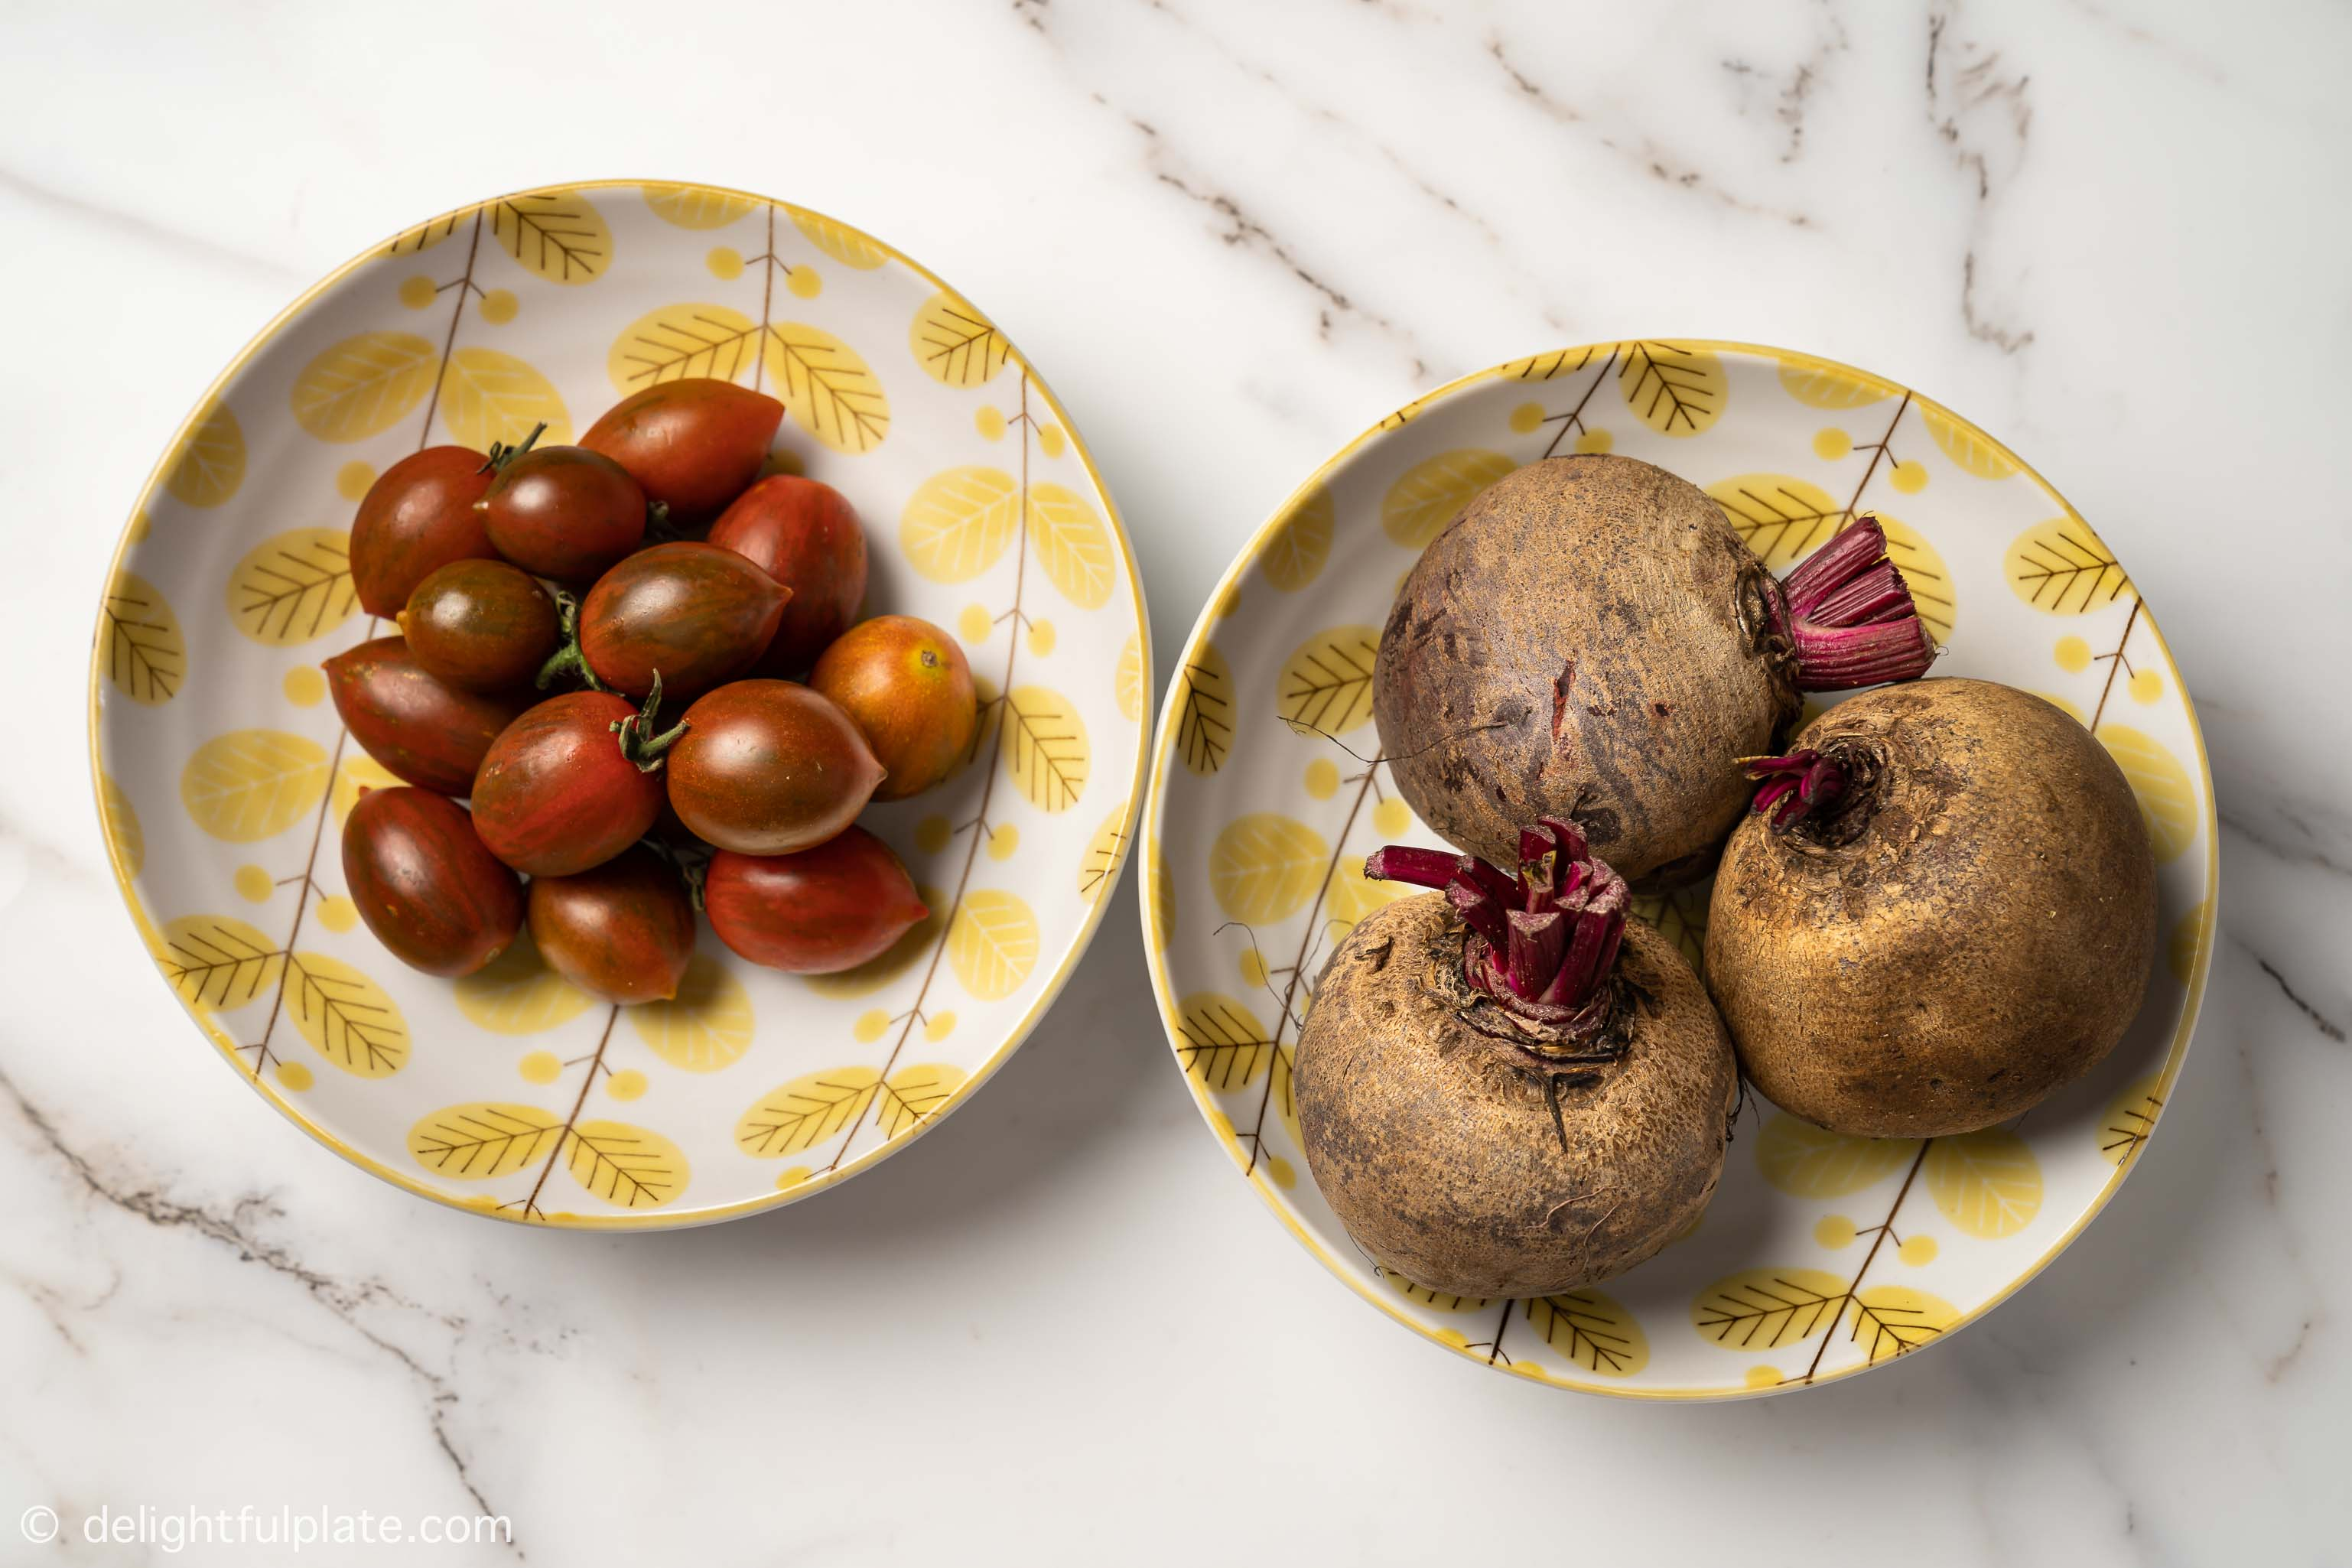 plates with beetroots and cherry tomatoes